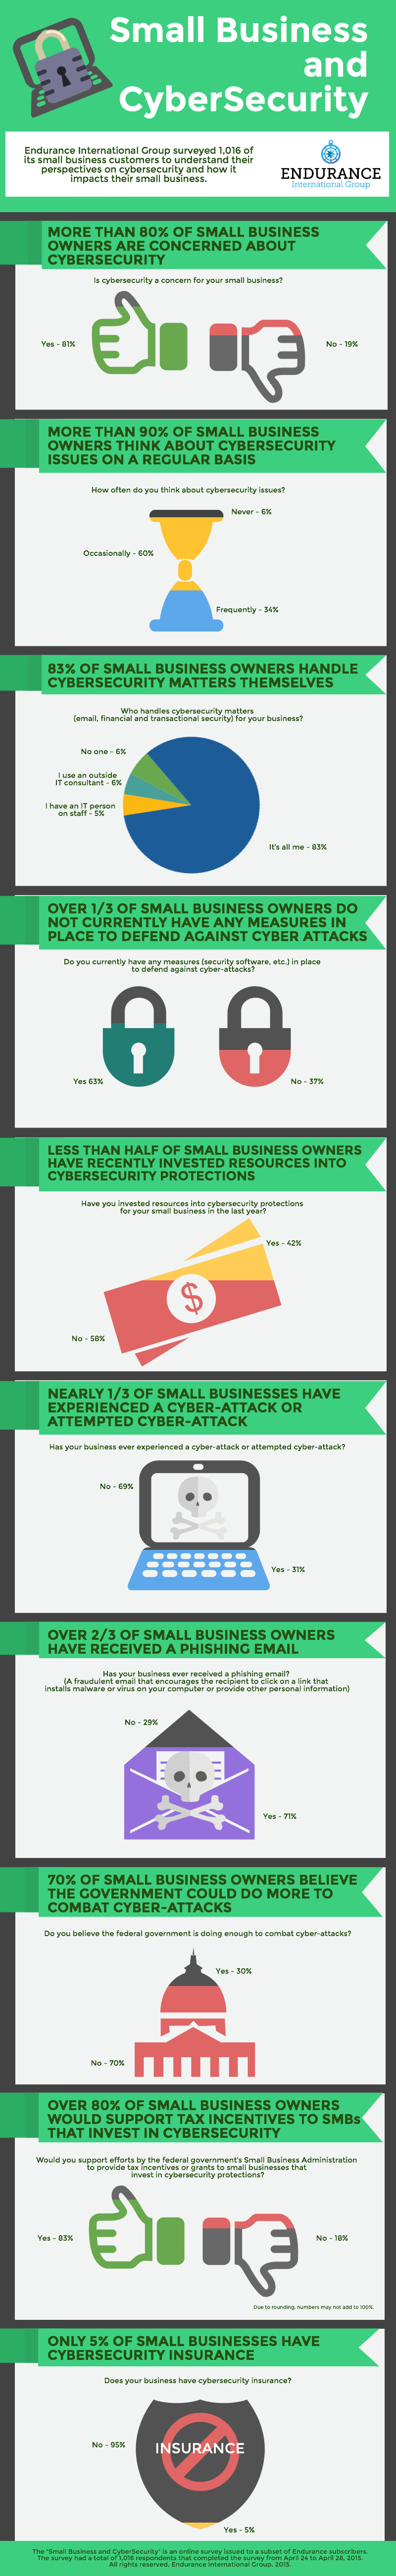 small business cybersecurity piktochart infographic editor. Black Bedroom Furniture Sets. Home Design Ideas